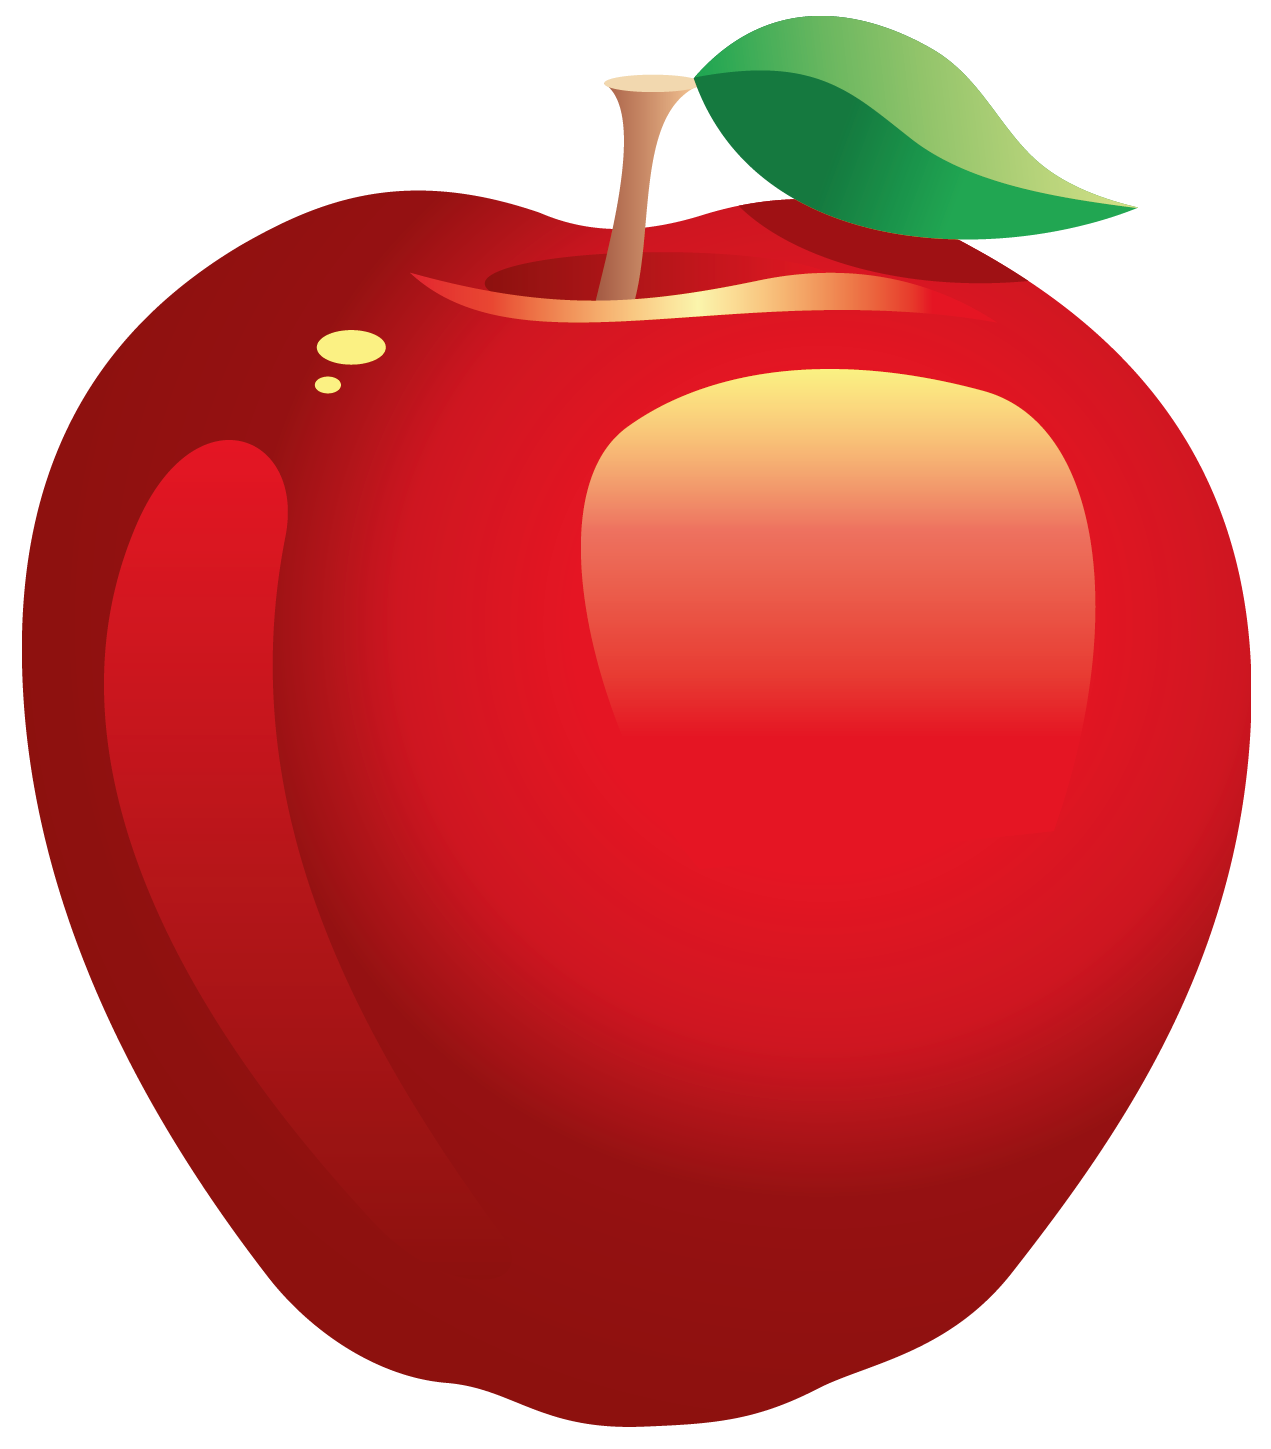 Clipart fruit star apple. Free transparent cliparts download